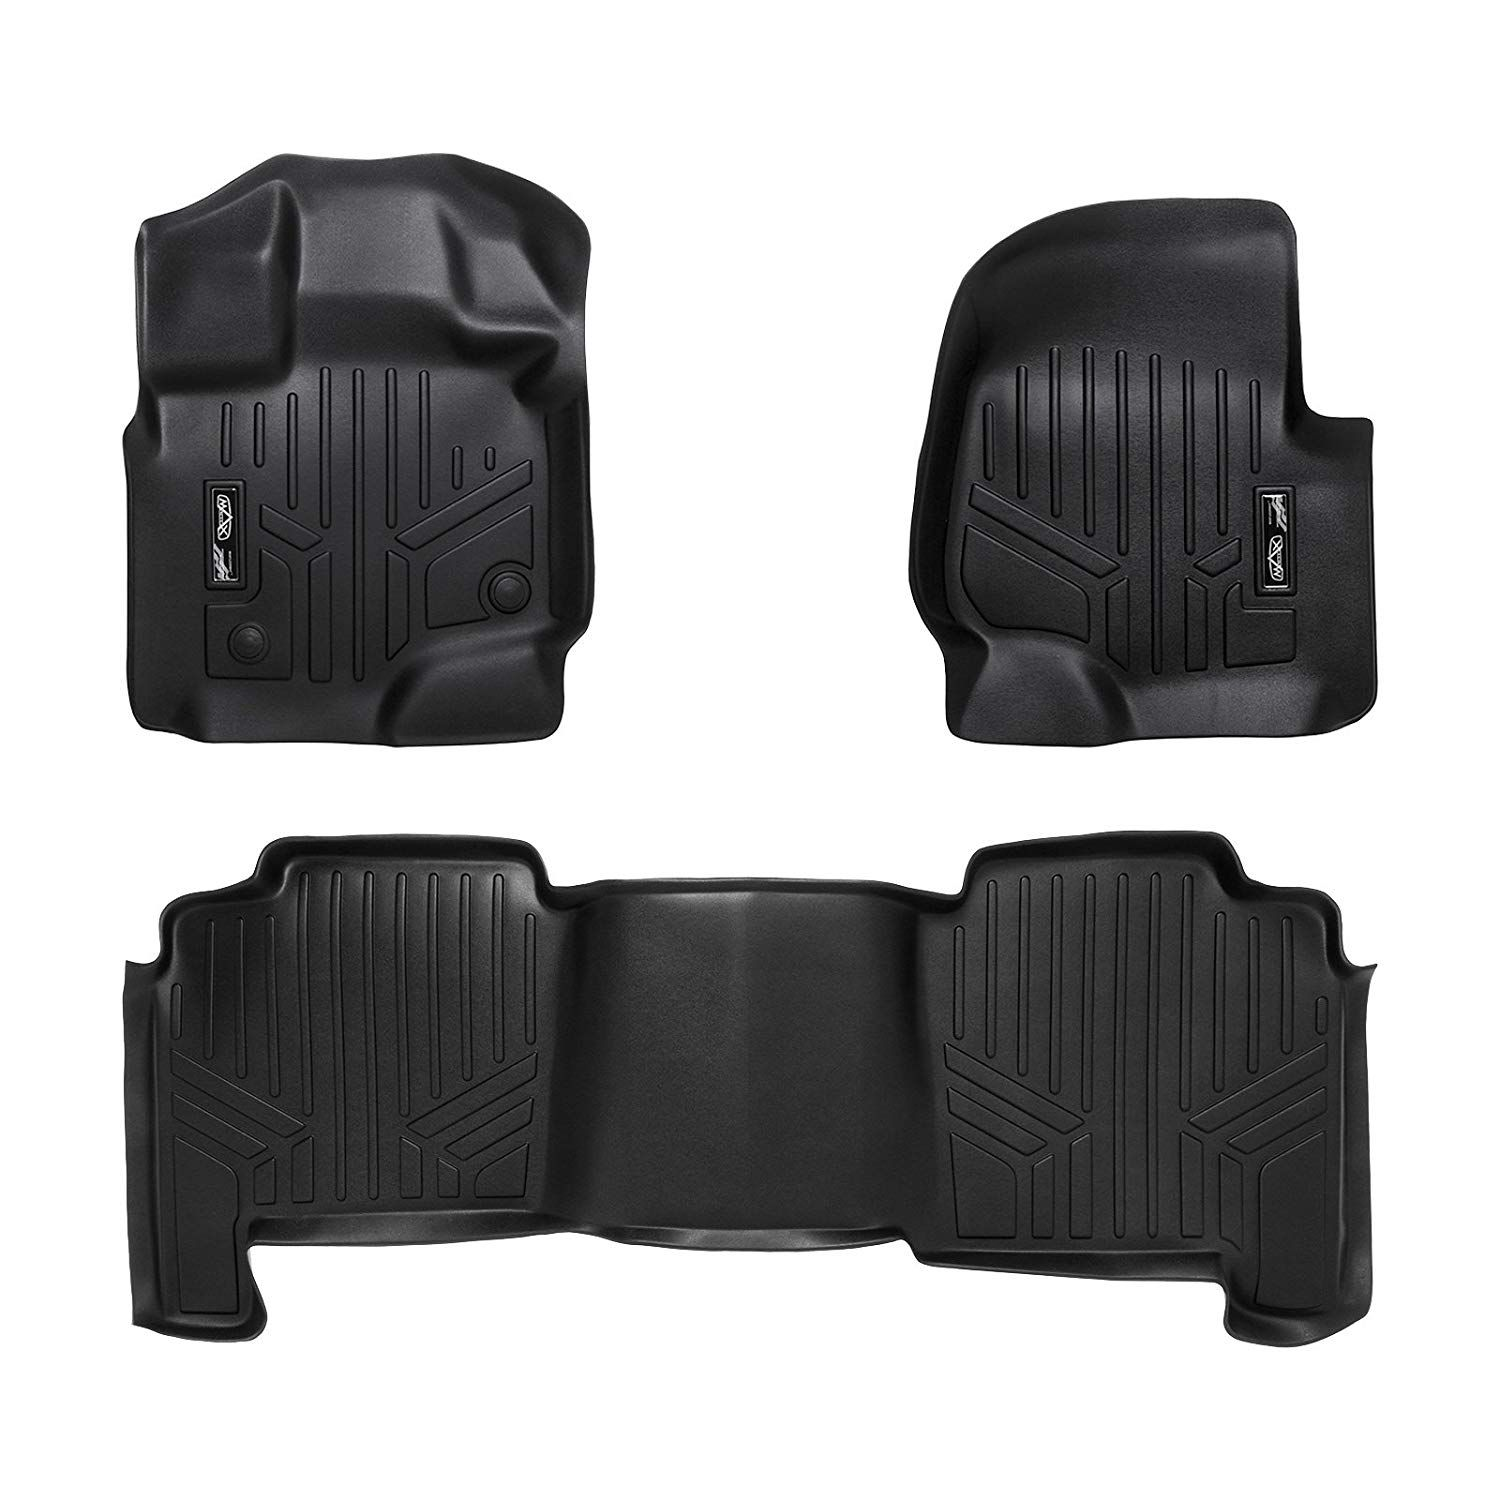 Smartliner Floor Mats 2 Row Liner Set Black For 2004 2008 Ford F 150 Supercrew Cab 2006 2008 Lincoln Mark Lt Crew Cab Want In 2020 Lincoln Mark Lt Ford F150 Ford